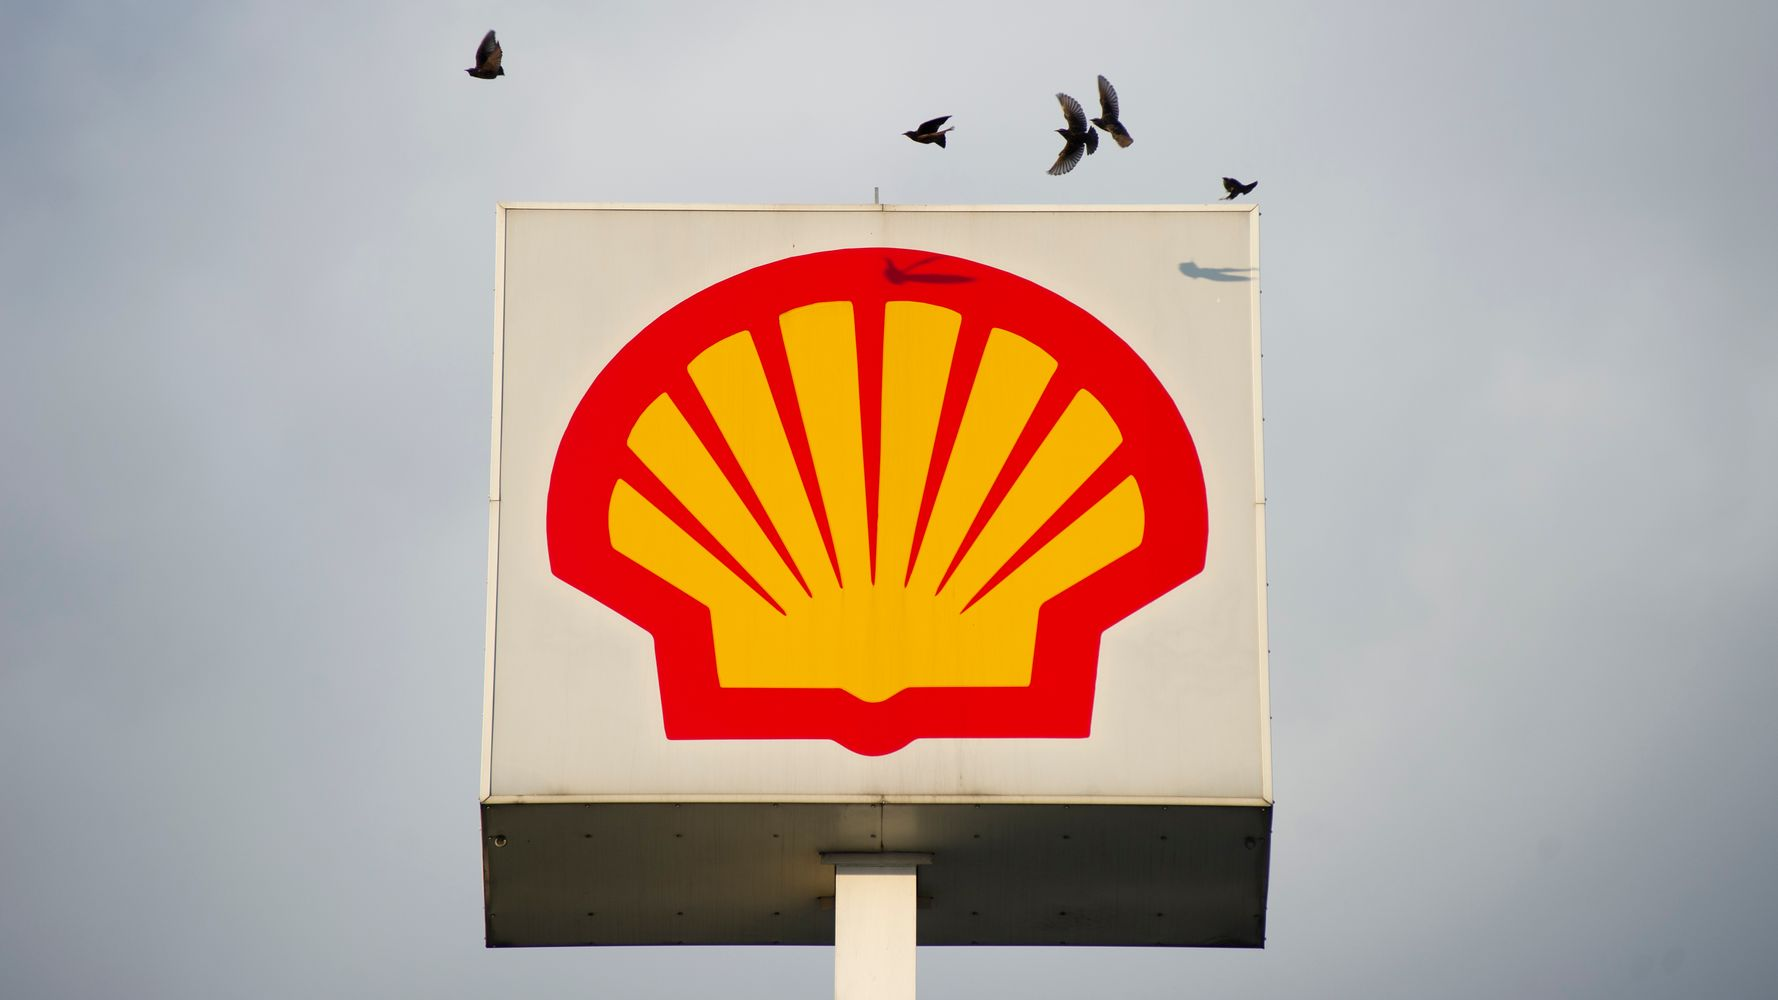 Despite Its Pledges, Shell Funded Anti-Climate Lobbying Last Year